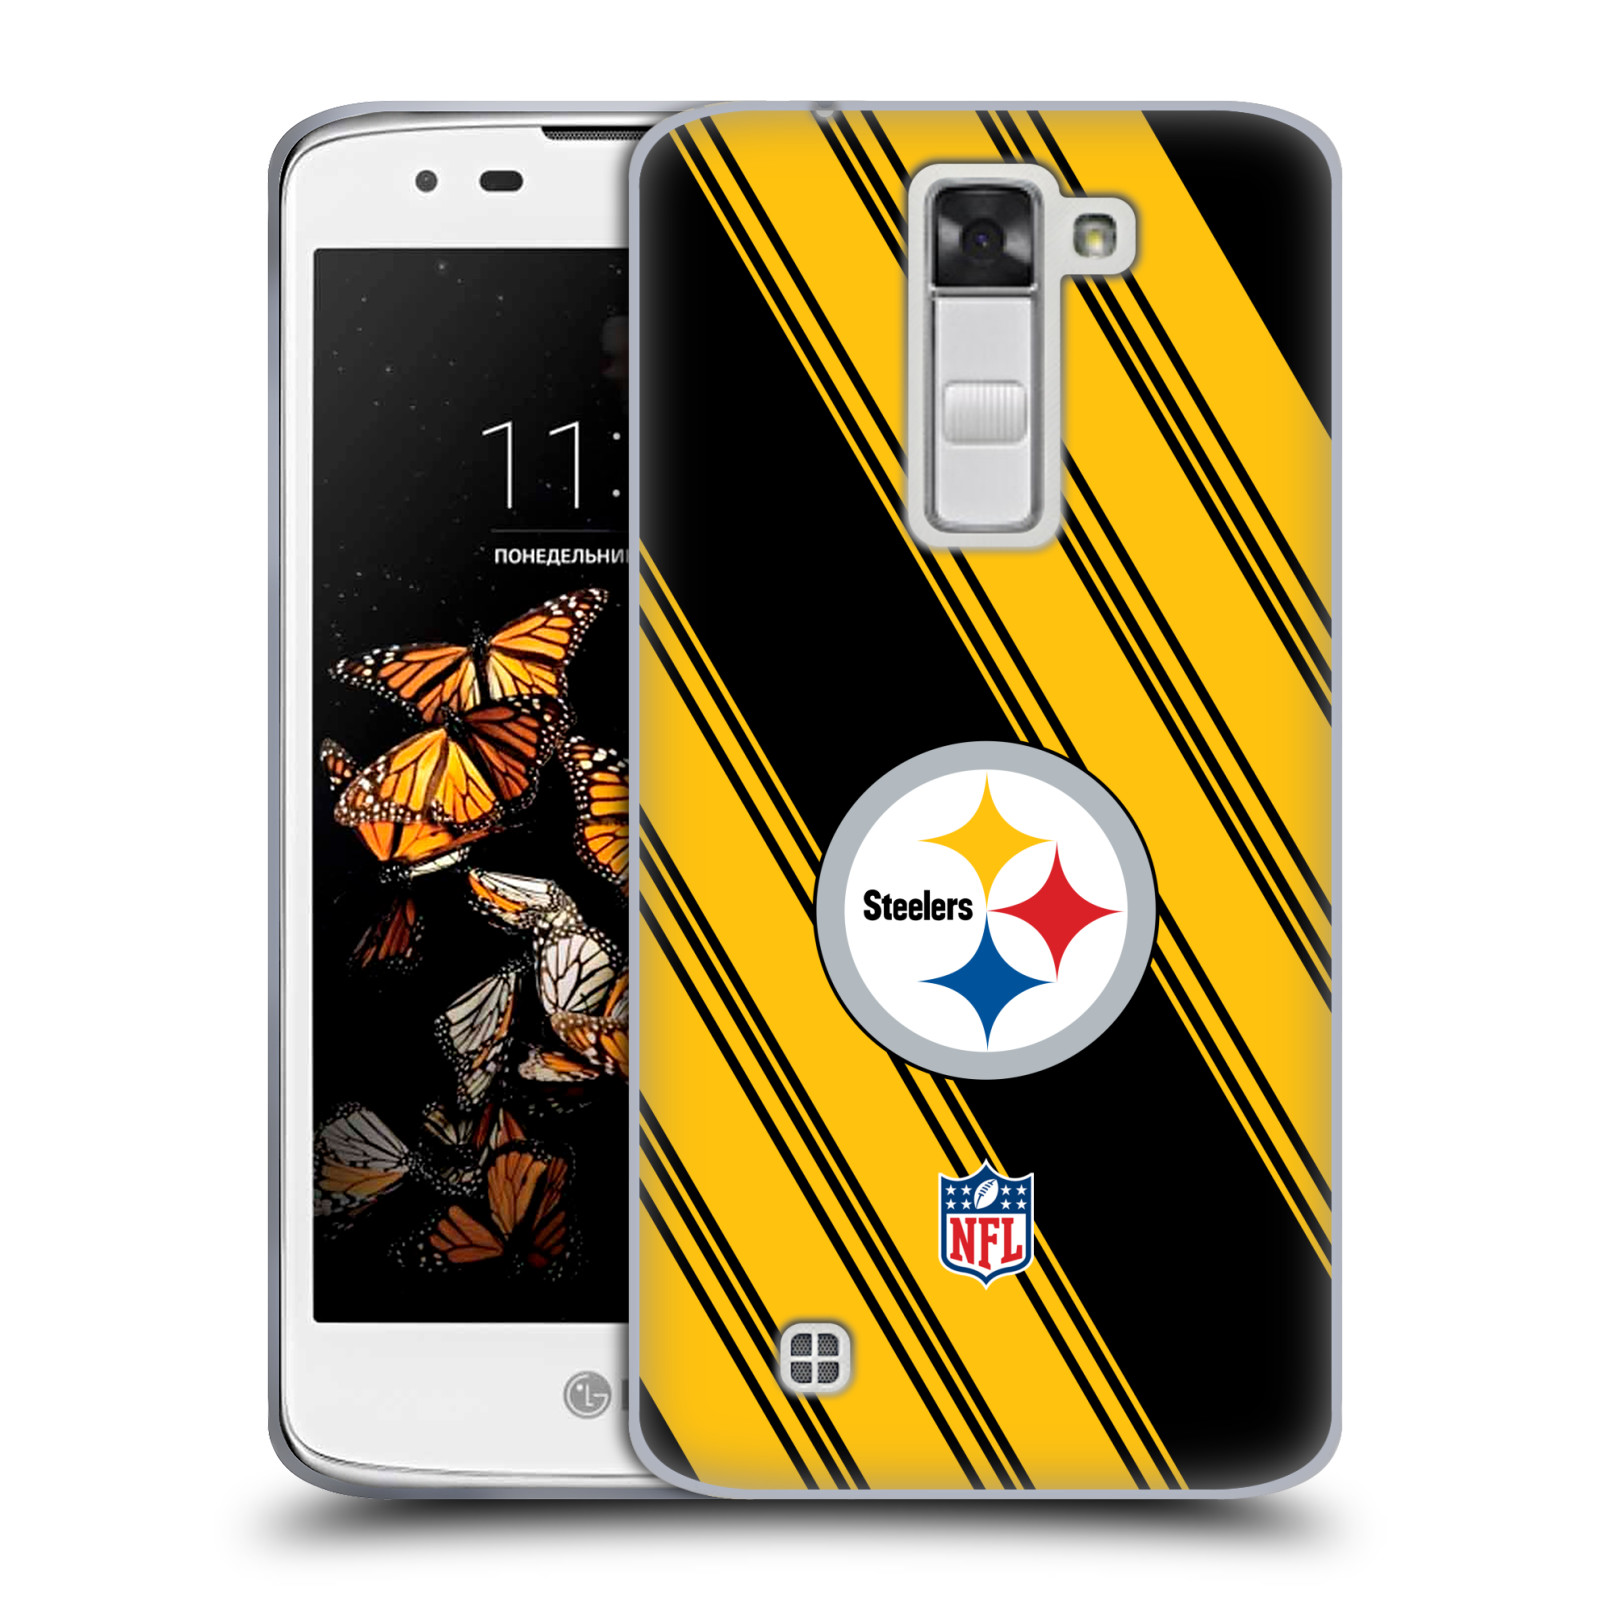 OFFICIAL NFL 2017/18 PITTSBURGH STEELERS SOFT GEL CASE FOR LG PHONES 2